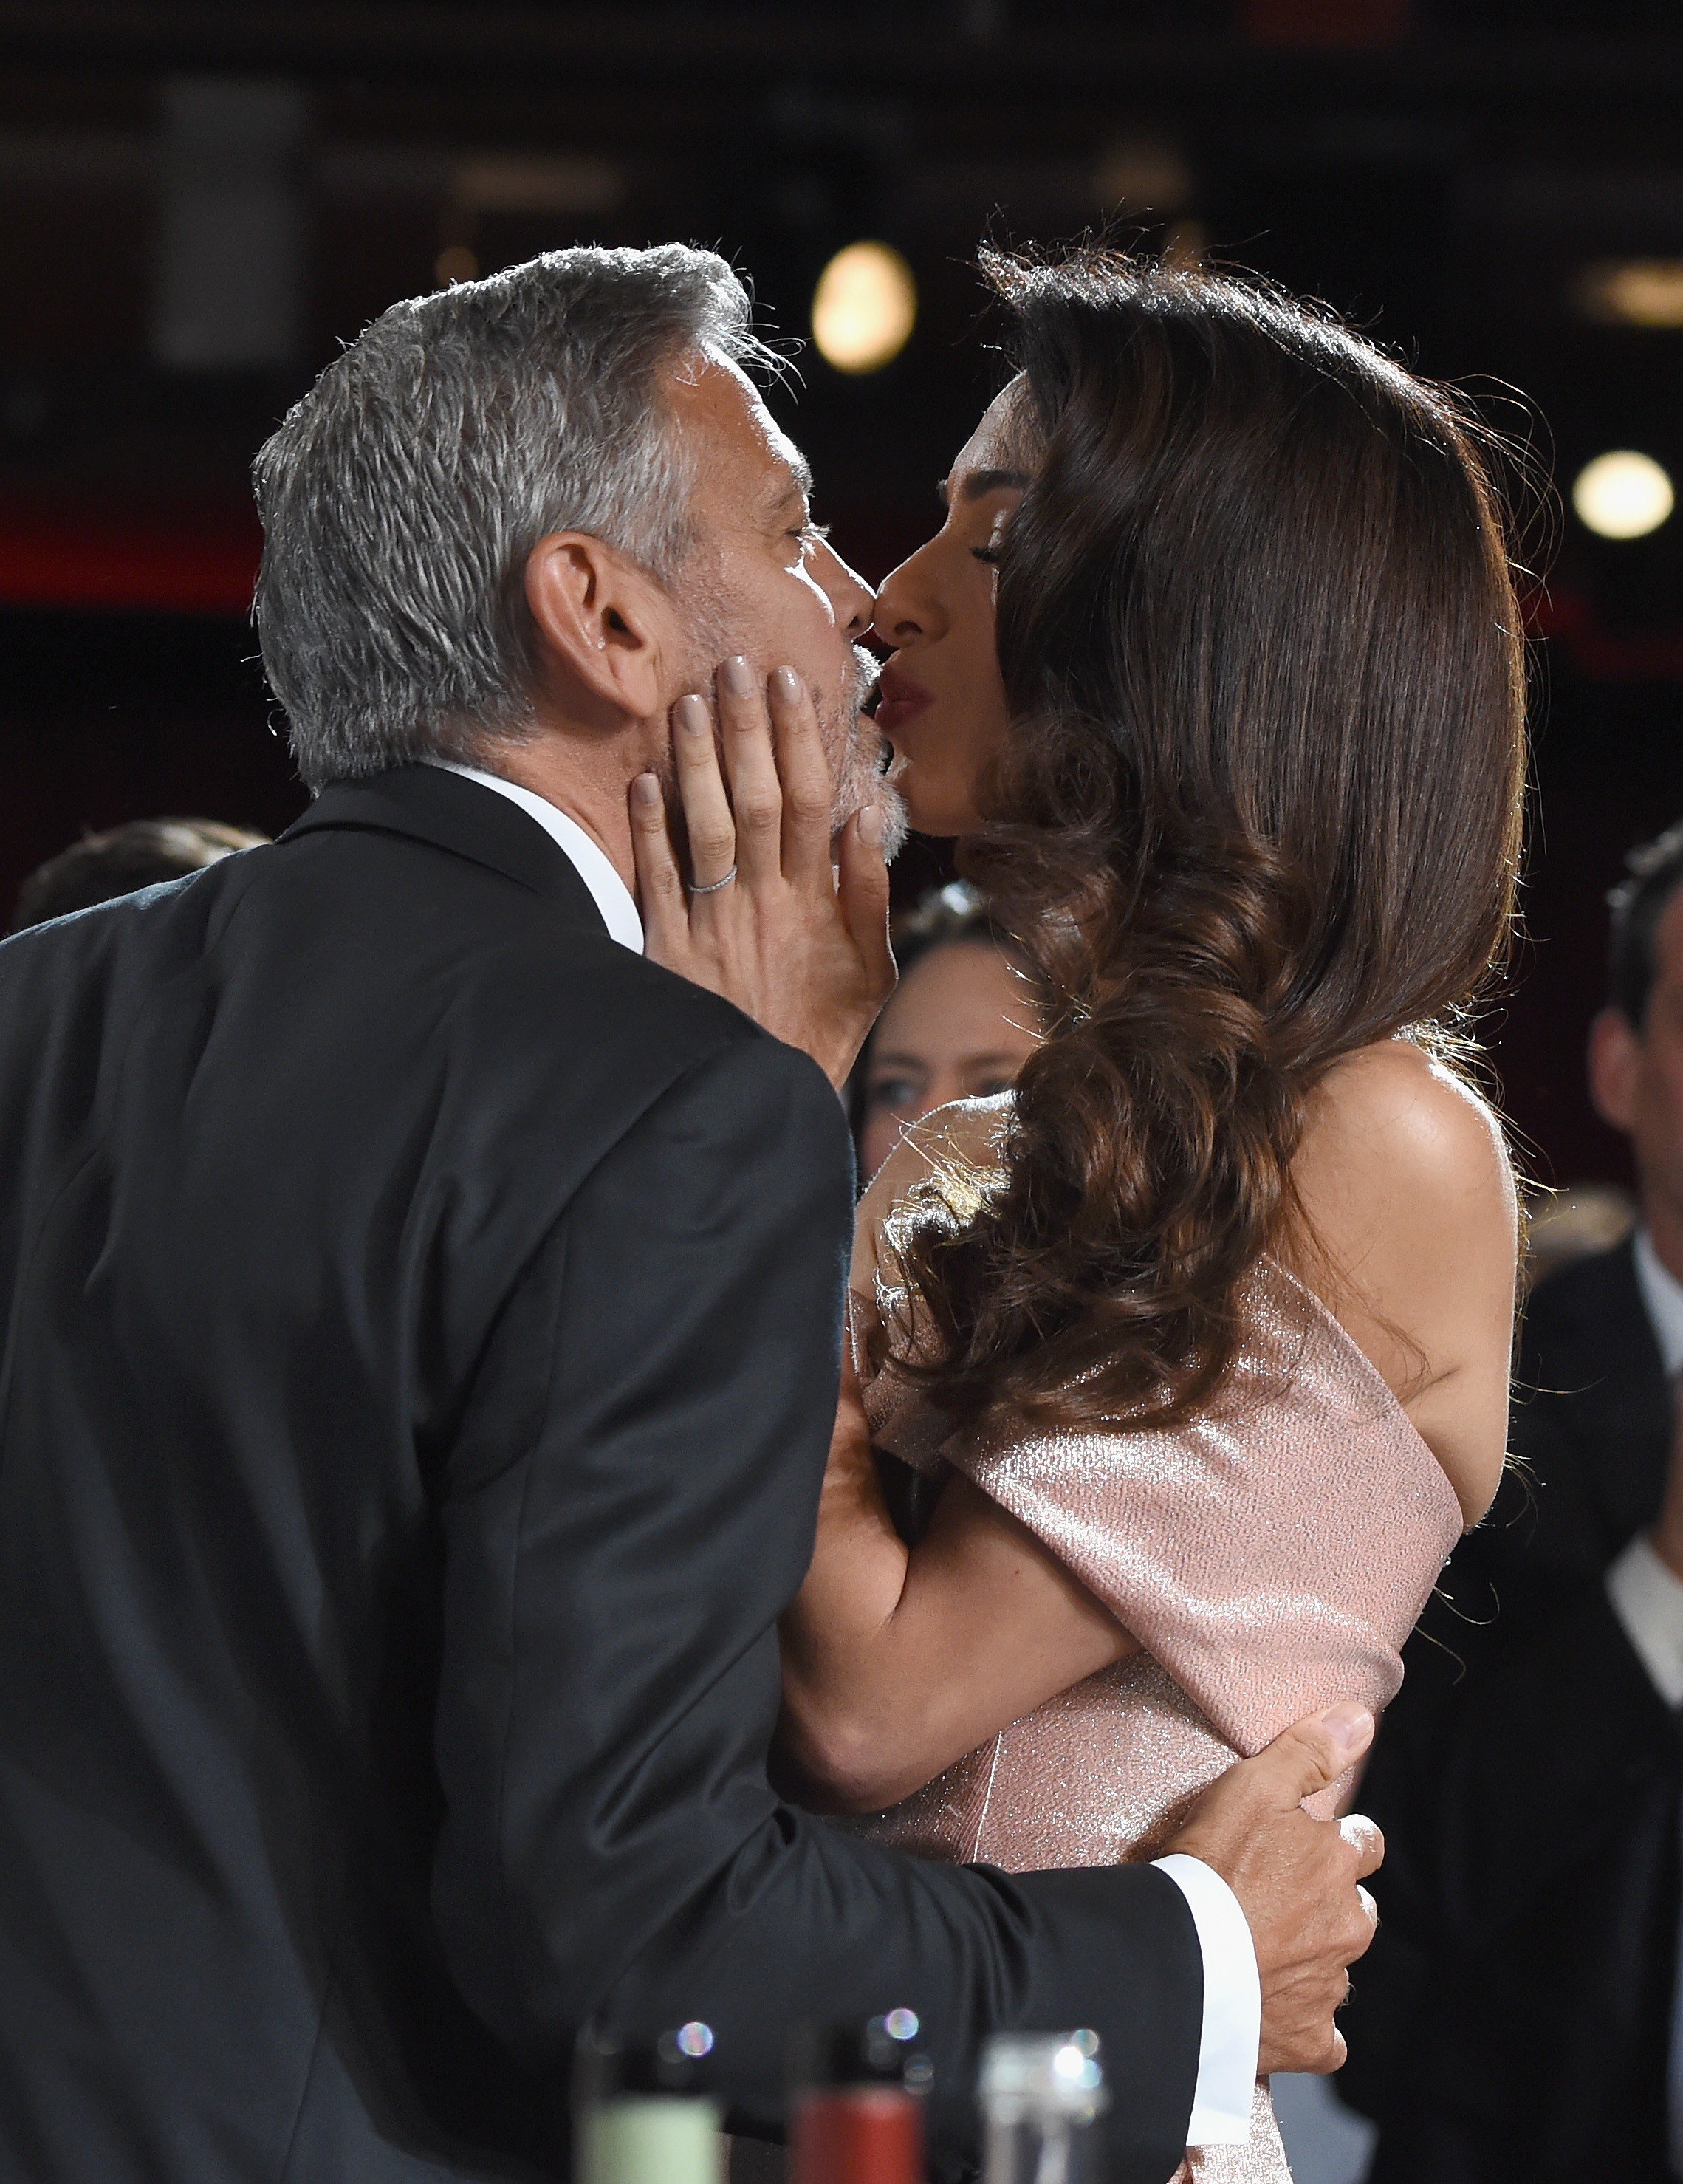 George Clooney and Amal Clooney attend Audi presents the American Film Institute's 46th Life Achievement Award Gala Tribute to George Clooney in Hollywood on June 7, 2018.